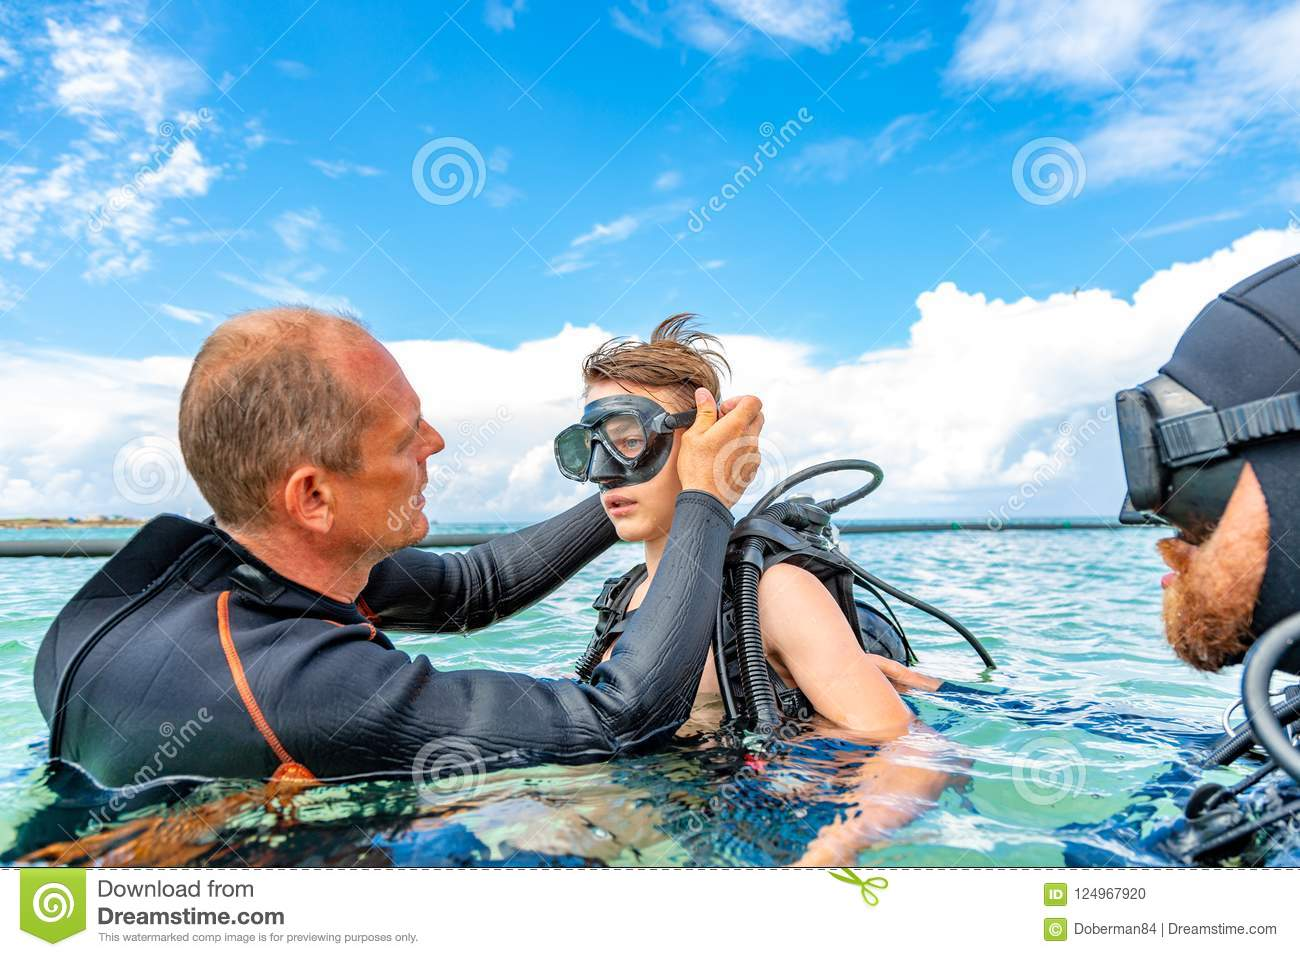 A man in a suit for diving prepares a boy to dive